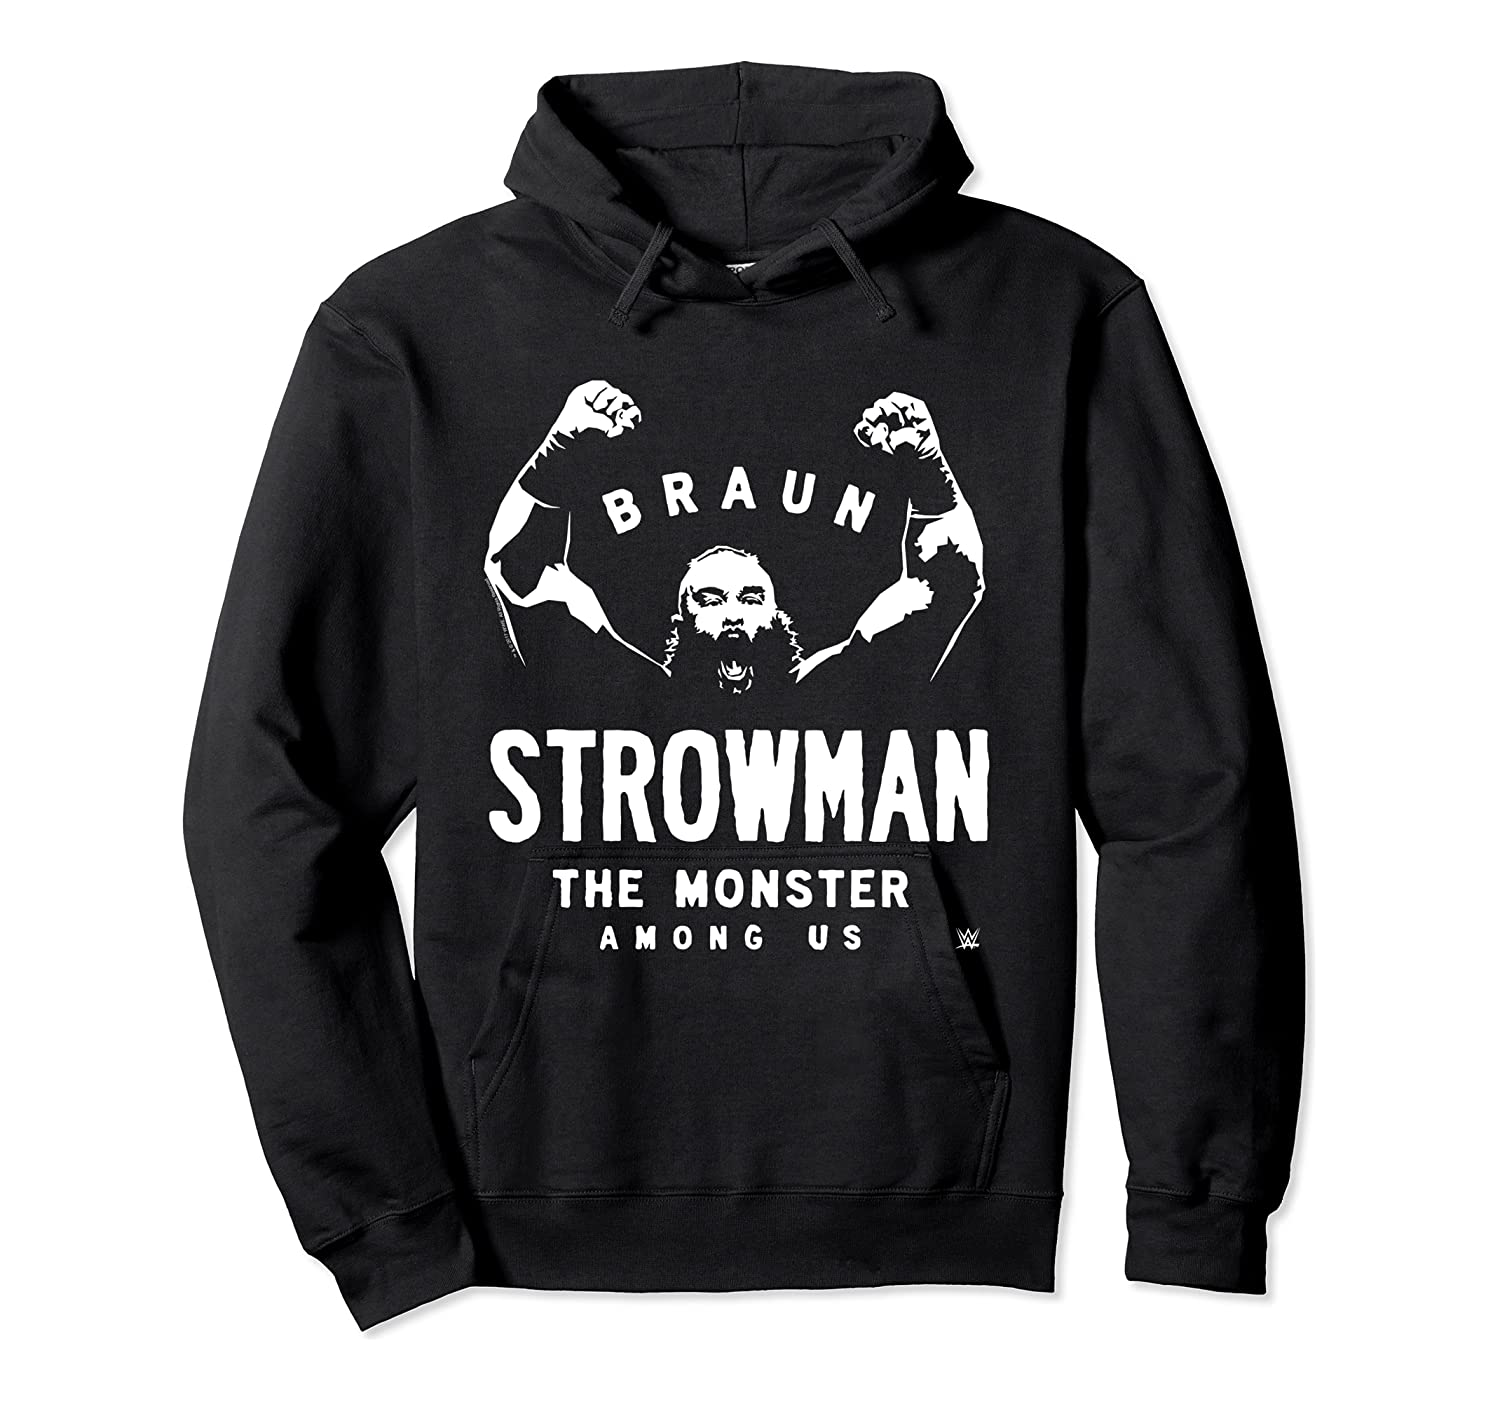 Braun Strowman The Monster Among Shirts Unisex Pullover Hoodie